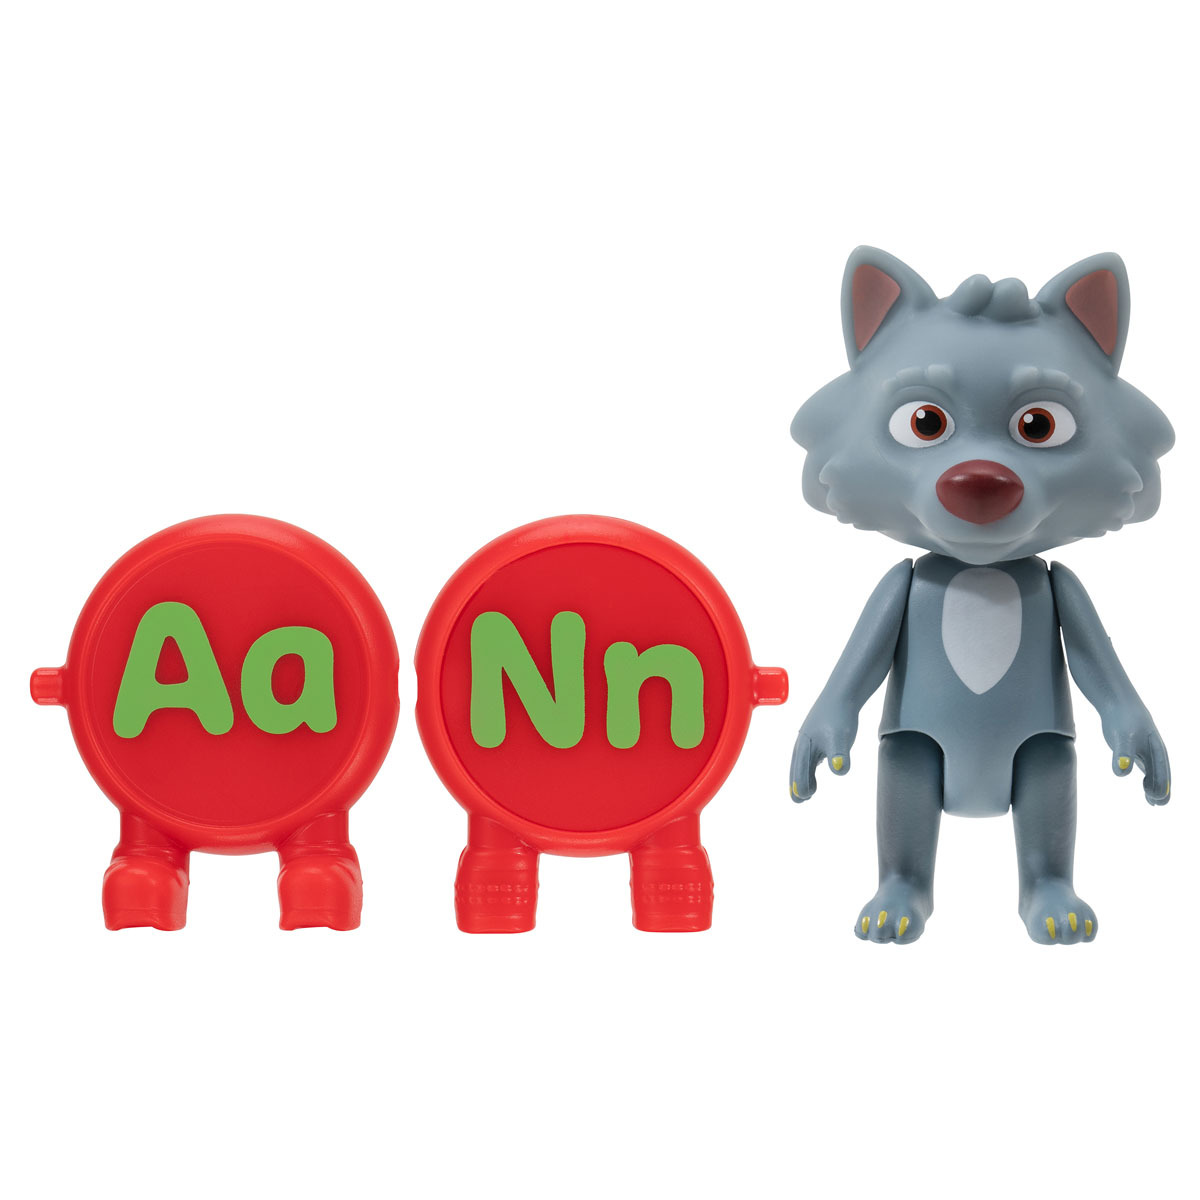 CoComelon Alphabet Surprise Blind Packs (Styles Vary) from Early Learning Center